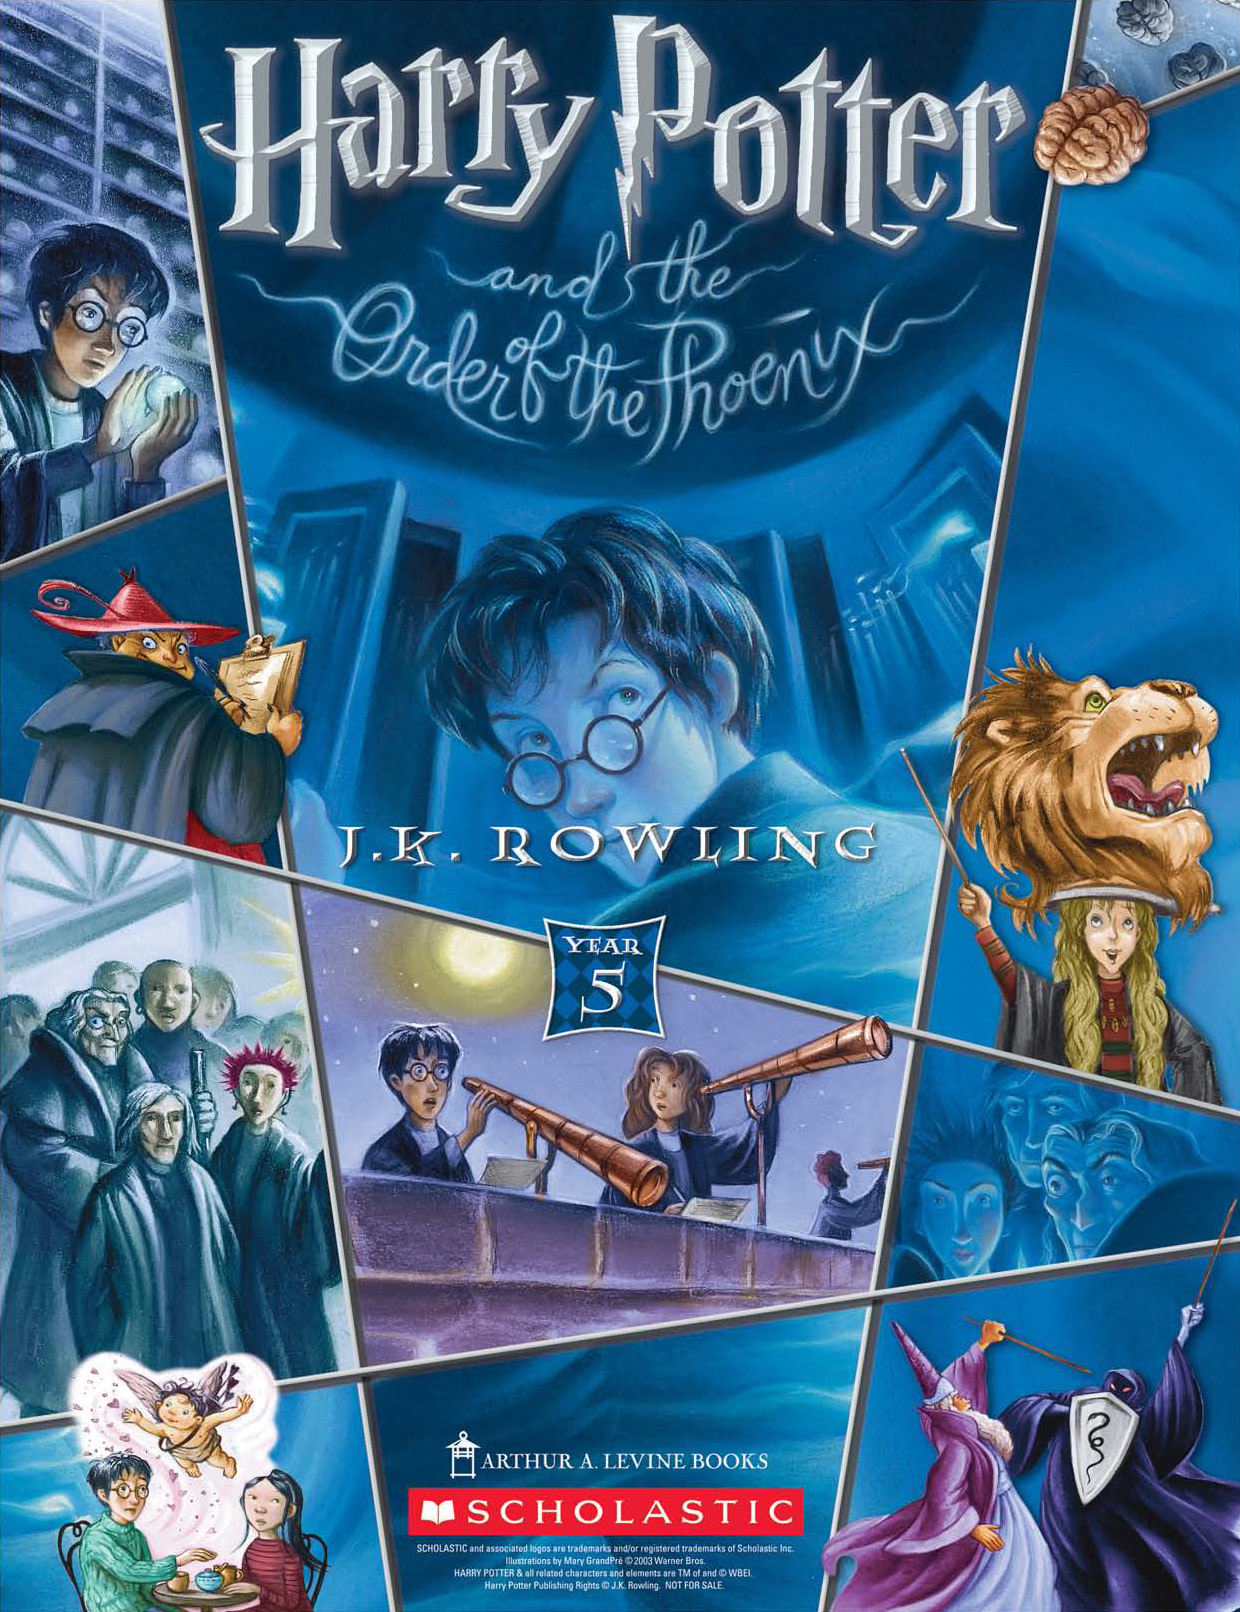 'Order of the Phoenix' (Year 5) Scholastic promotional poster